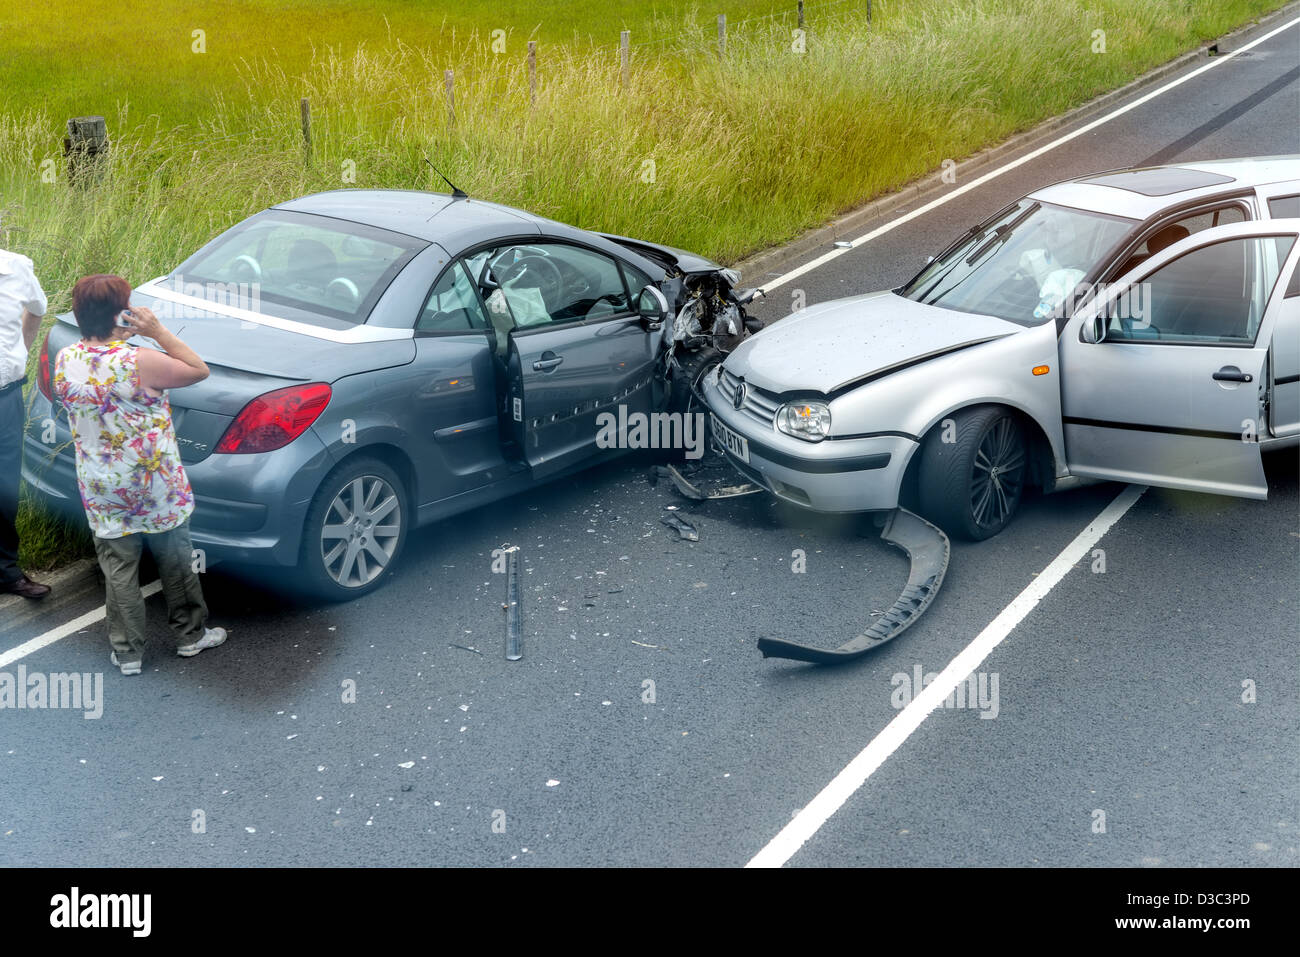 Cars, Car Accident - Stock Image